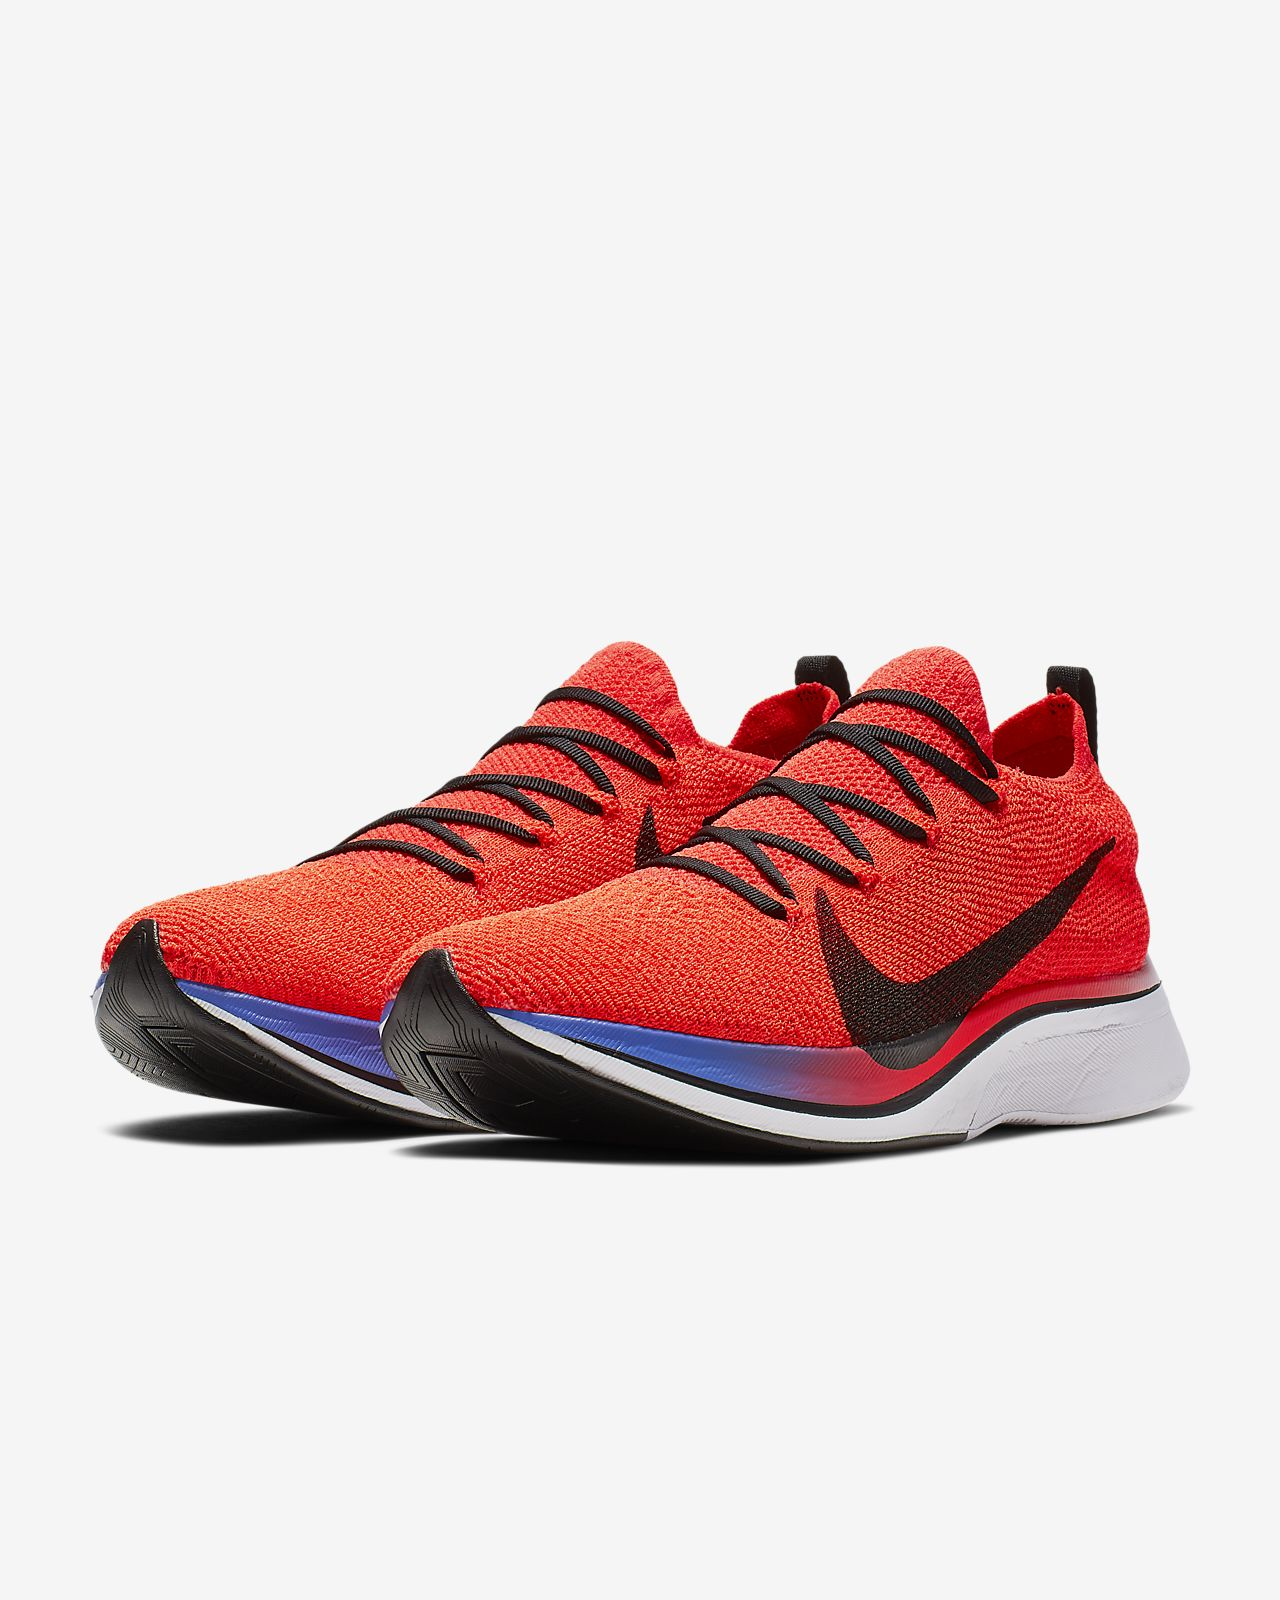 on sale cfebb 295ba ... Nike Vaporfly 4% Flyknit Running Shoe